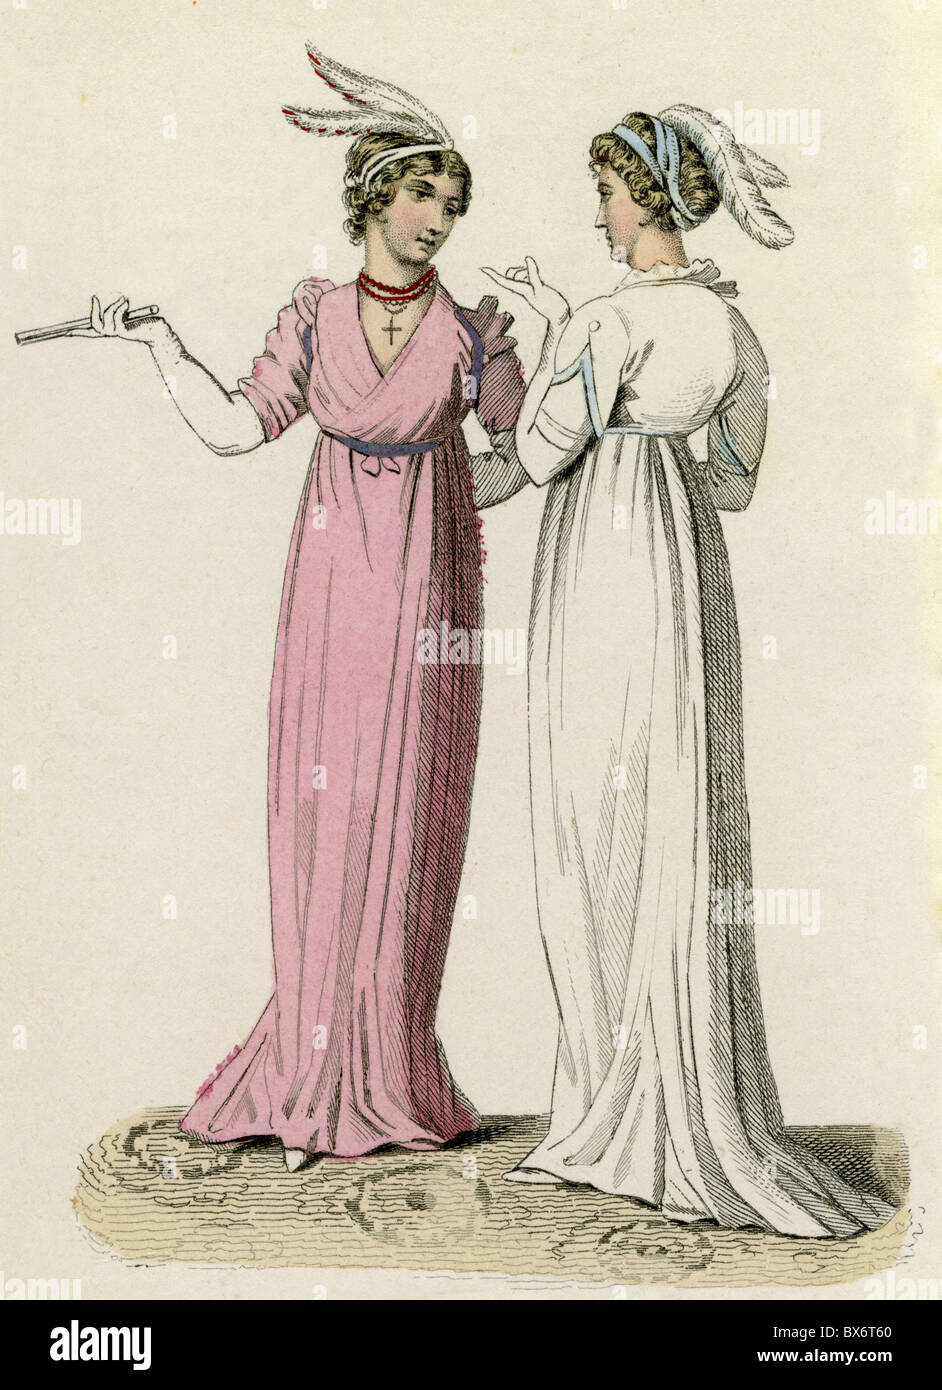 fashion, 19th century, English afternoon dresses, June 1801, Additional-Rights-Clearences-NA - Stock Image